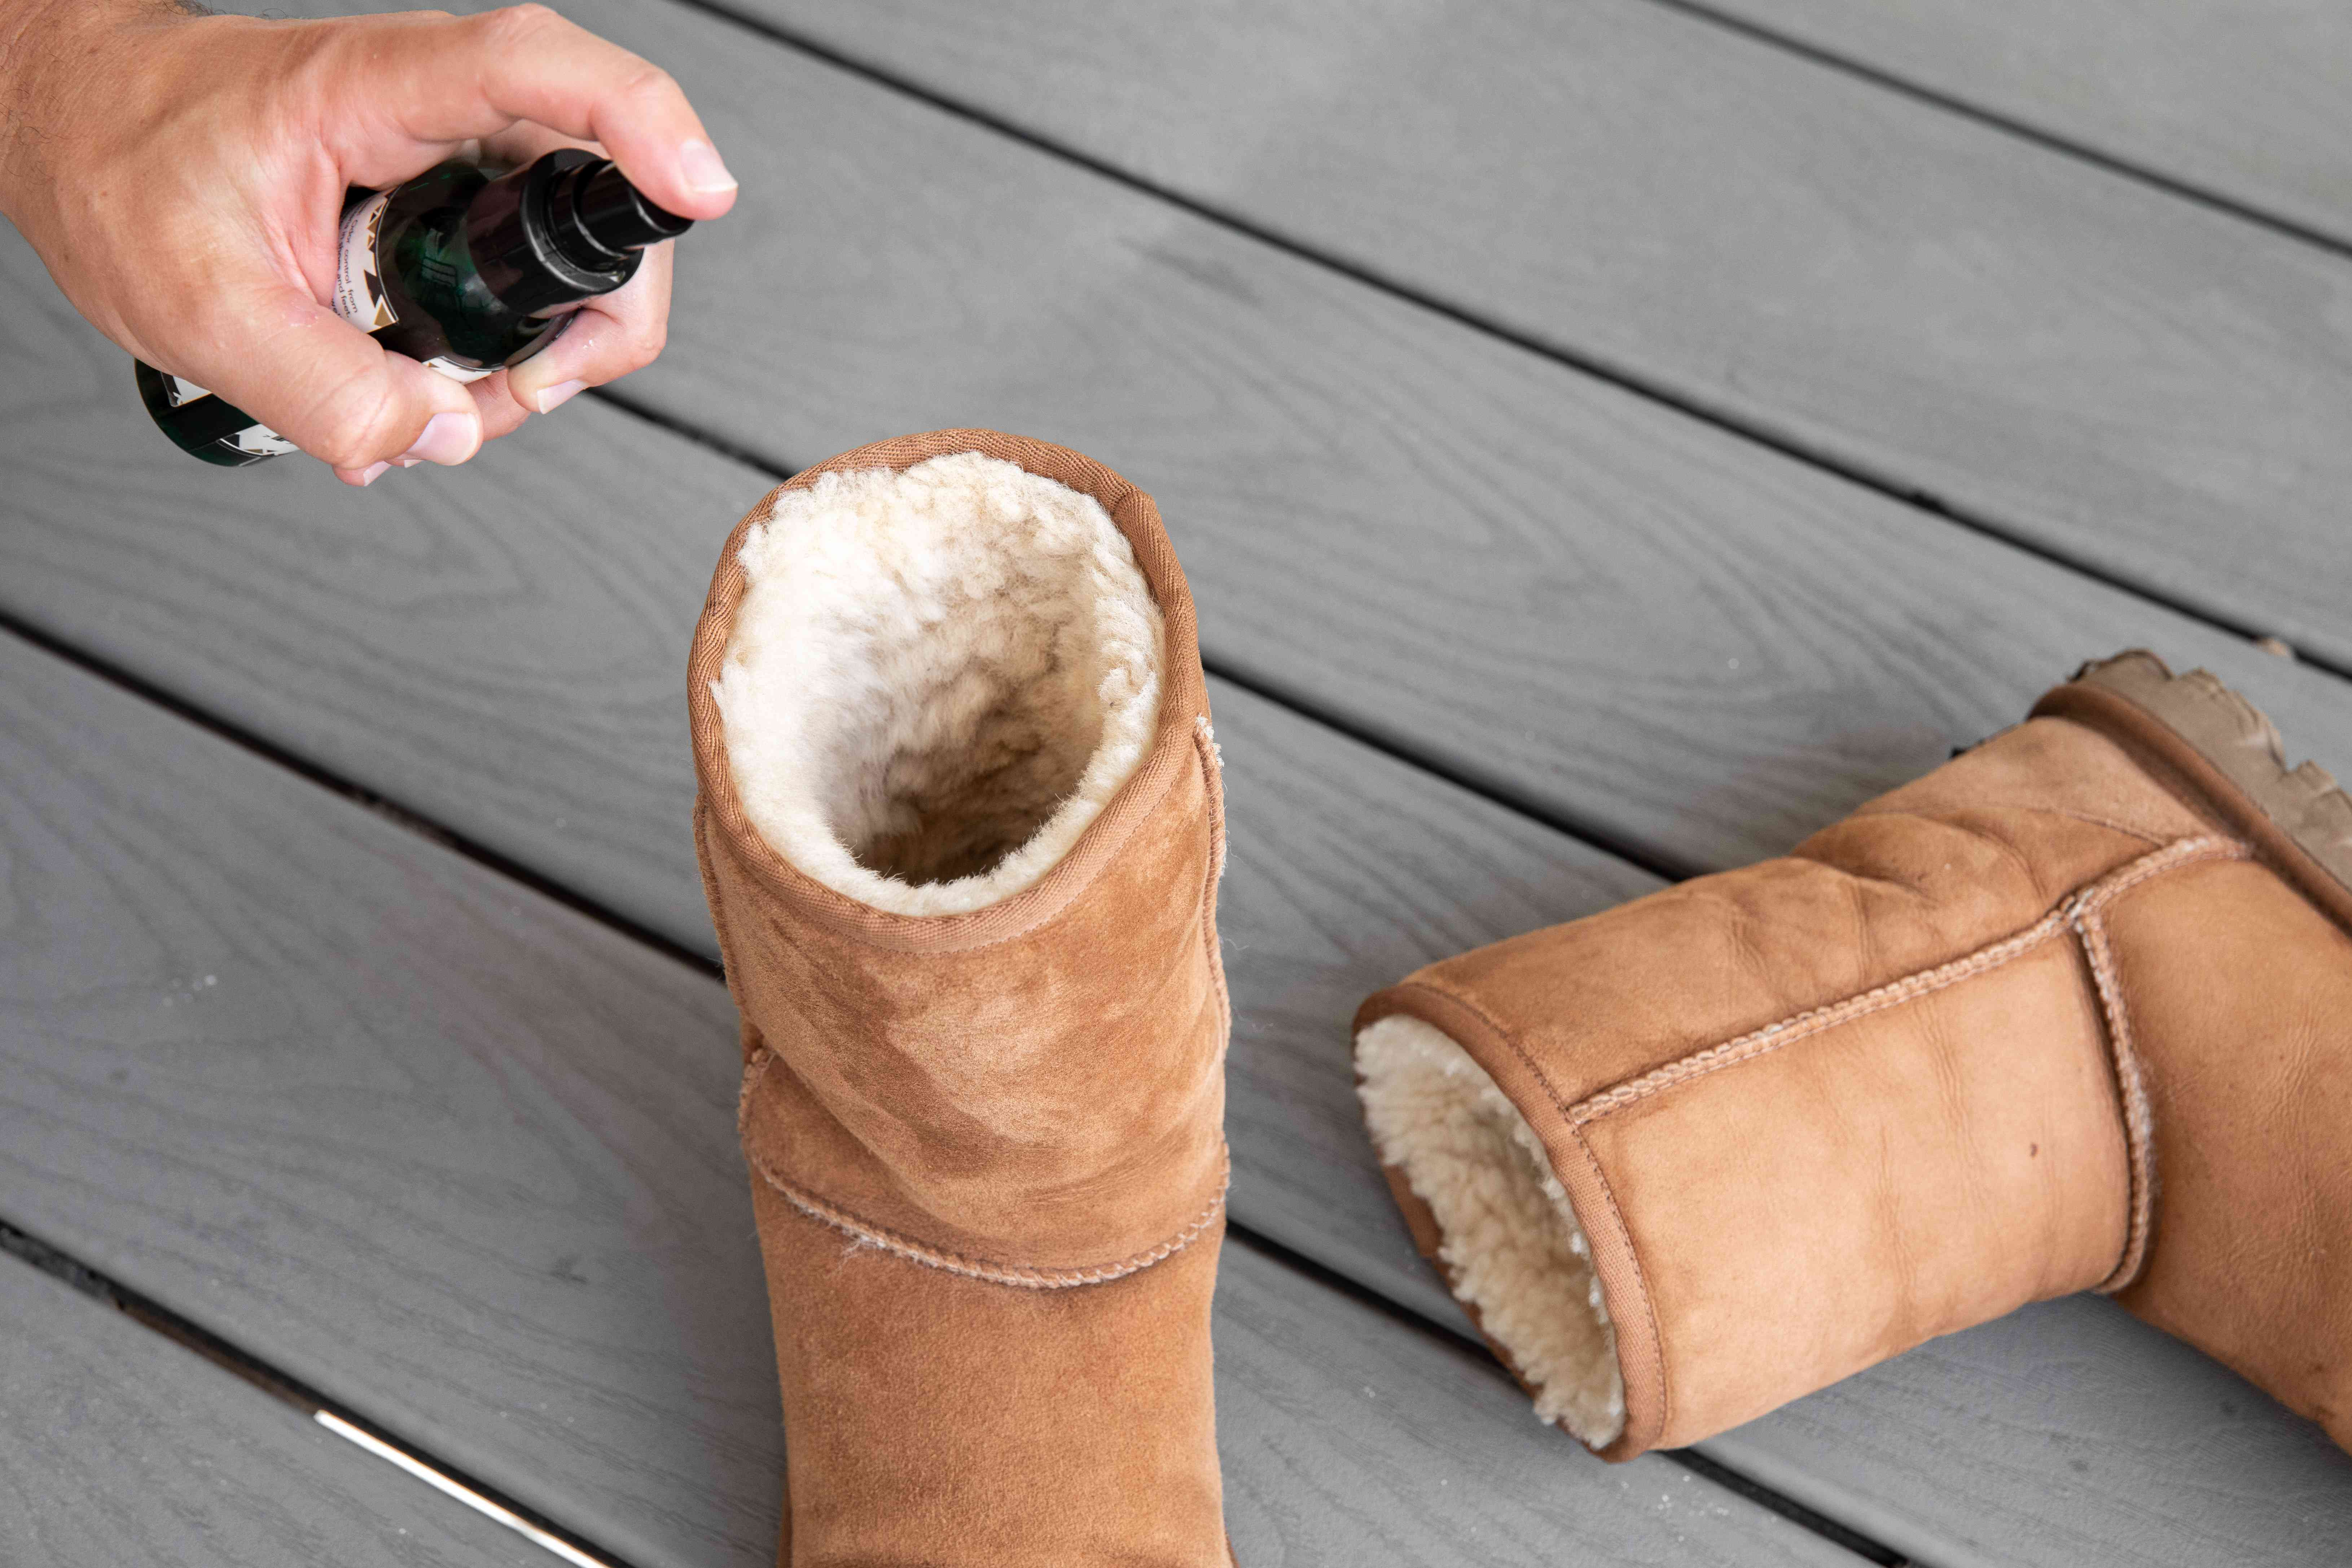 Someone using fungal spray inside an Ugg boot